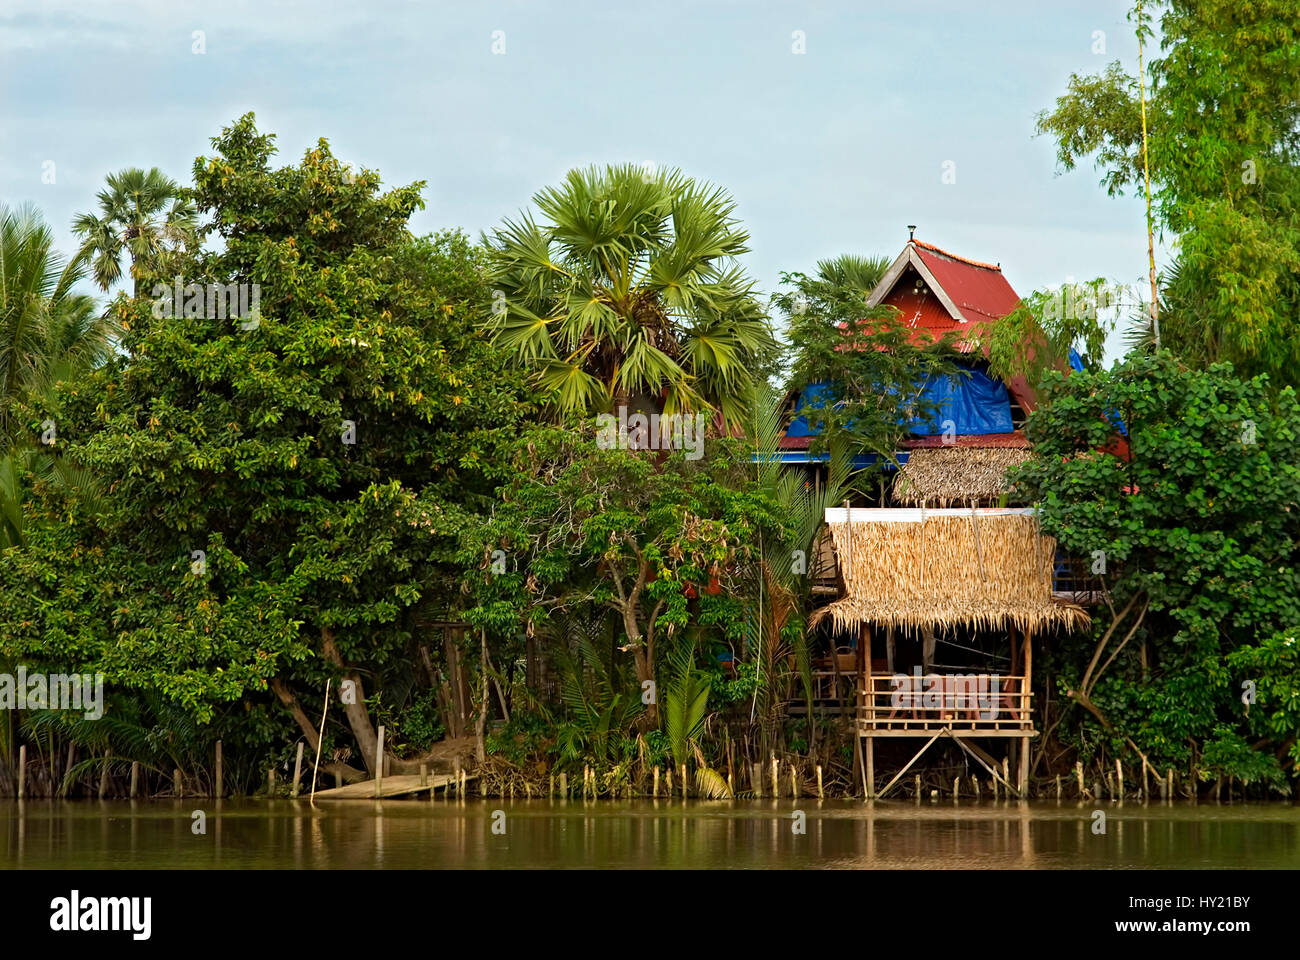 This stock photo shows a colorful wooden fishing hut at the bank of the Kampot Bay River near the city of Kampot Stock Photo